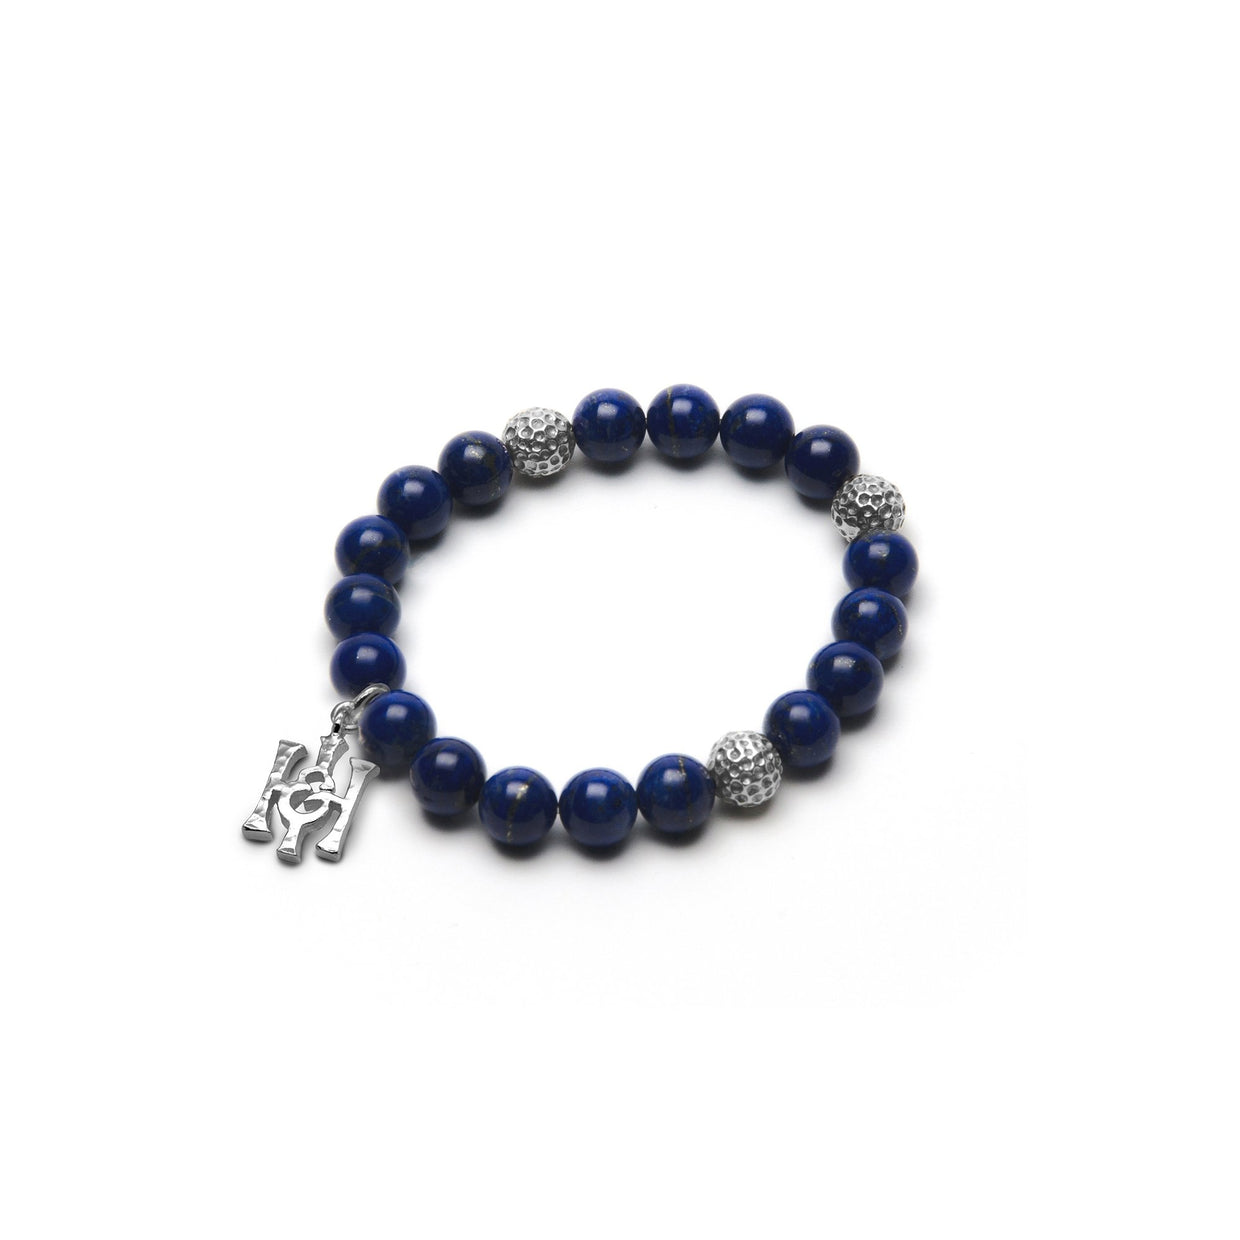 Lapis Lazuli & Hammered Silver Bead Bracelet - Small-Hamilton & Inches